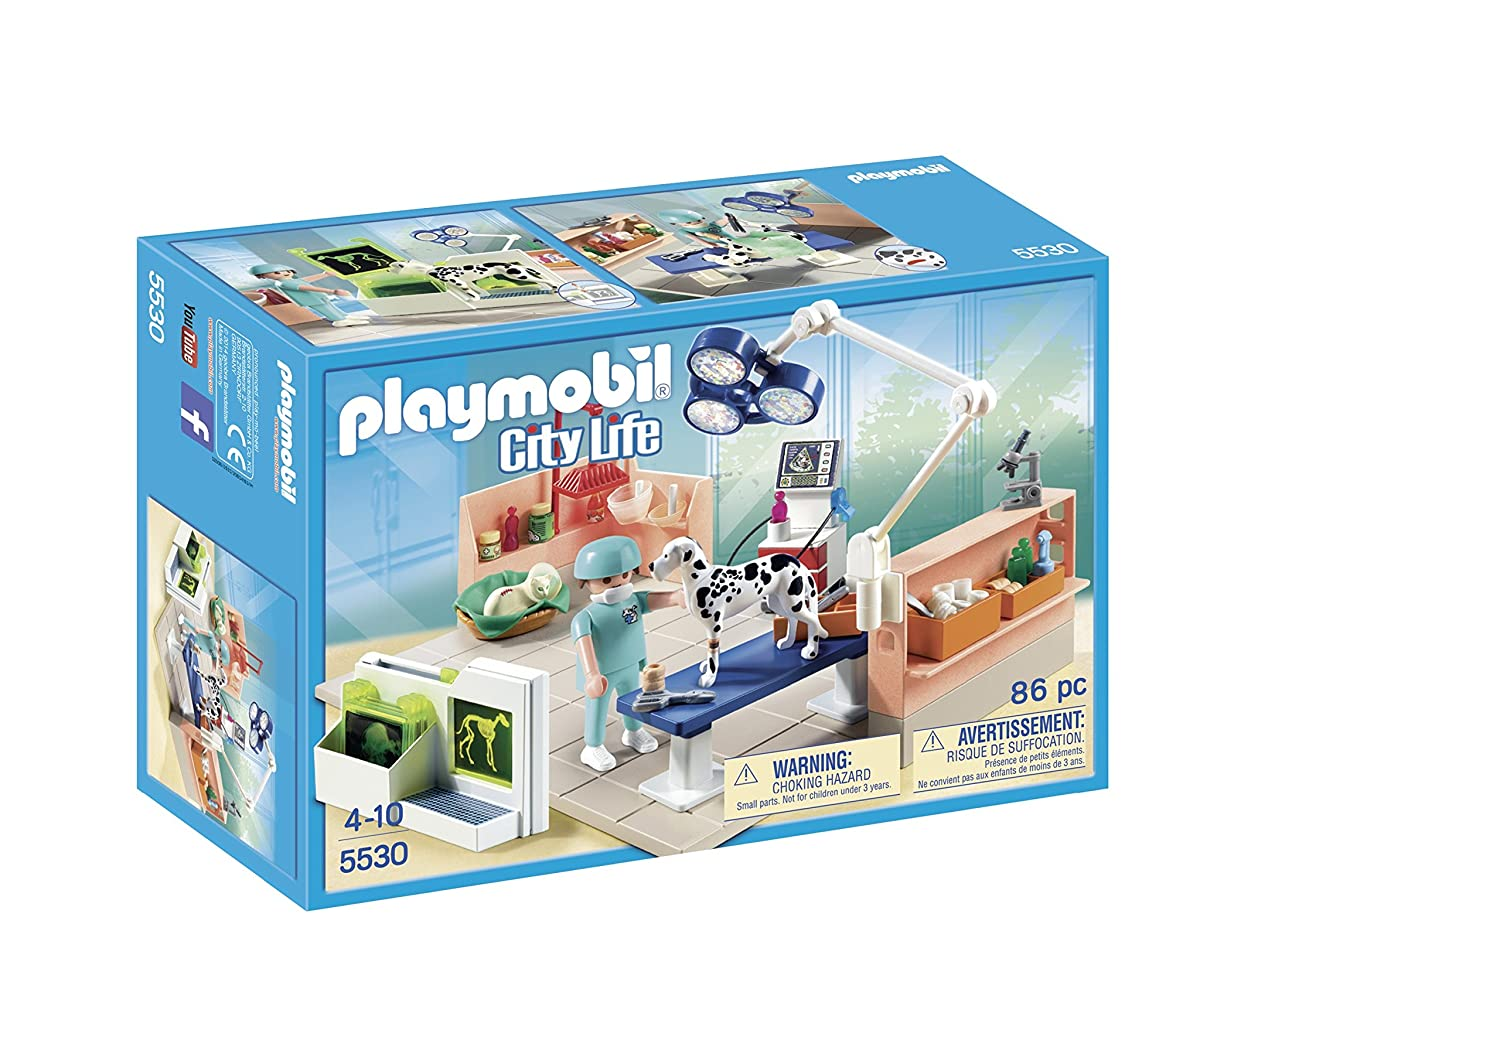 Maison playmobil amazon dco playmobil city life maison for Salle a manger playmobil city life